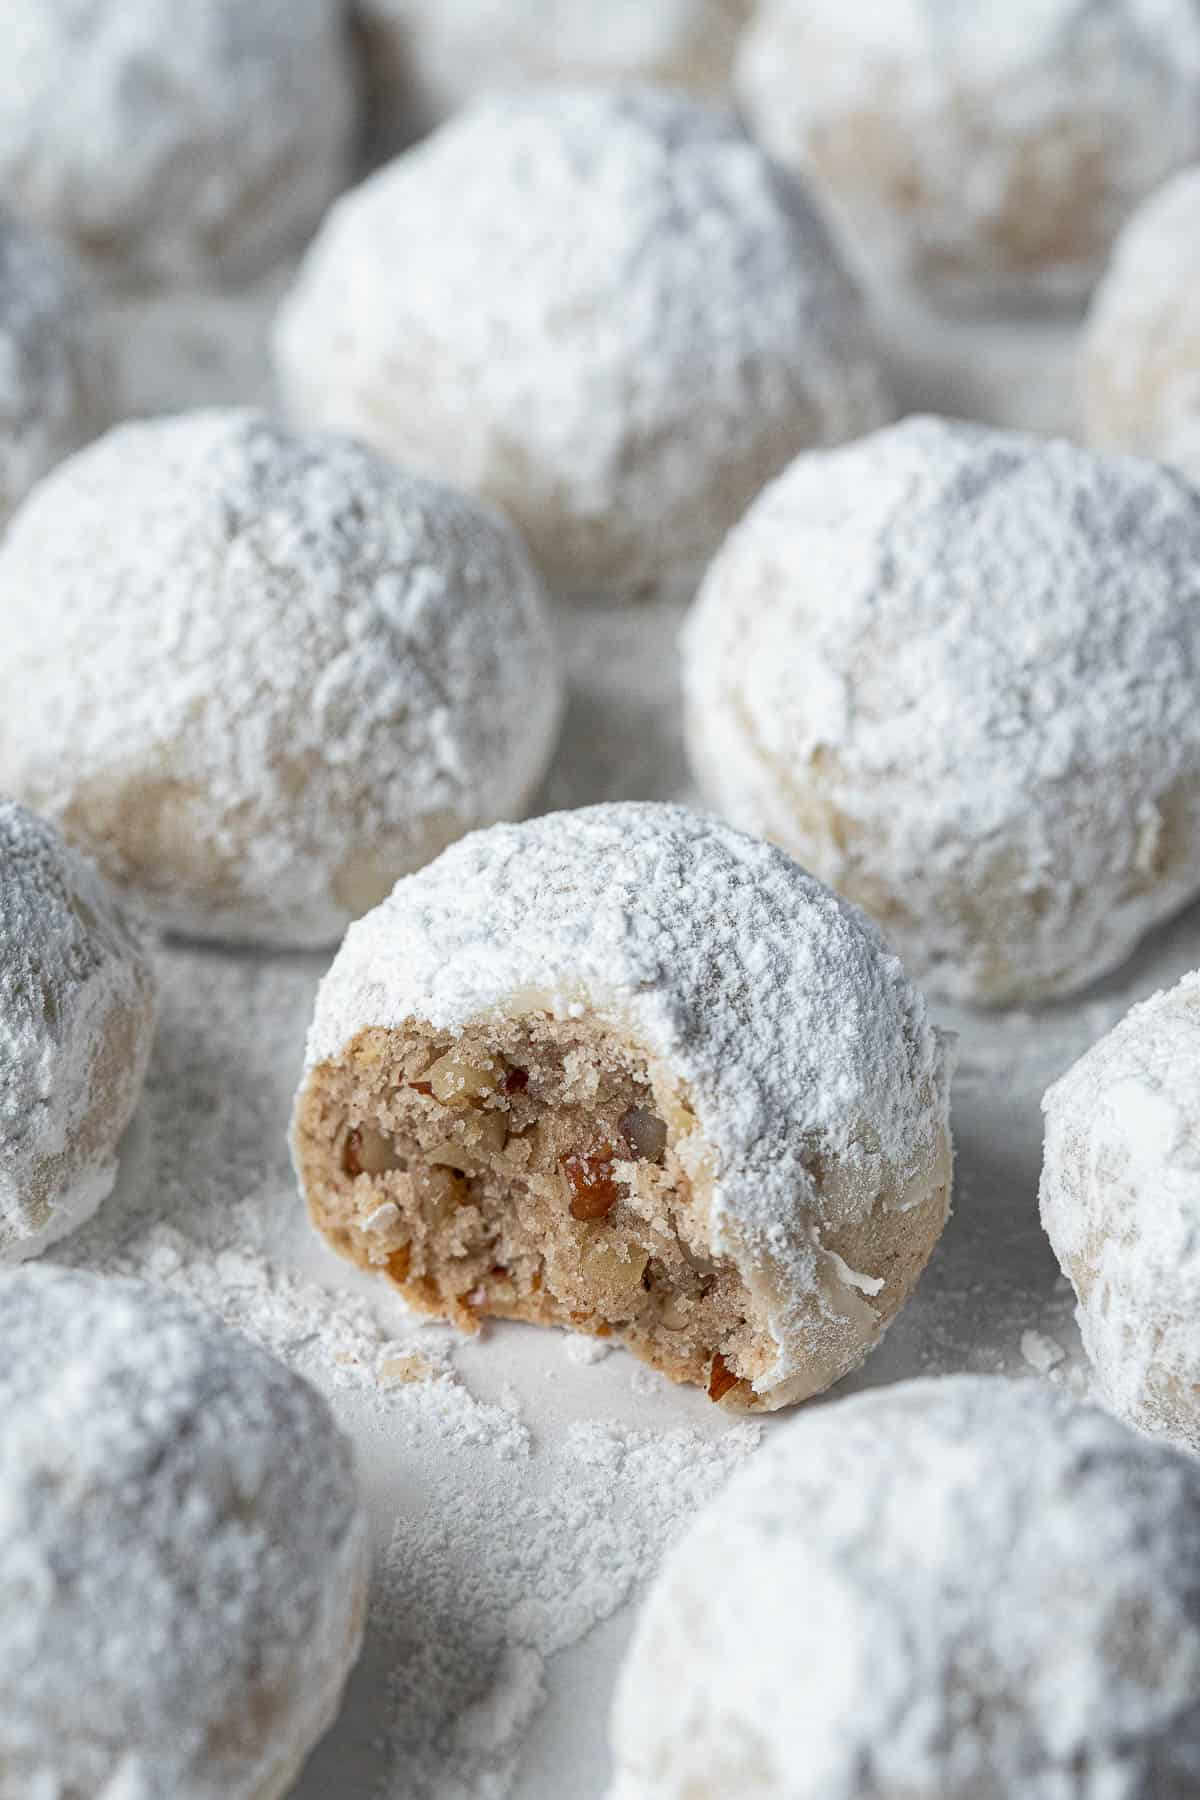 Close up of a vegan pecan snowball cookie with a bite taken out of it.